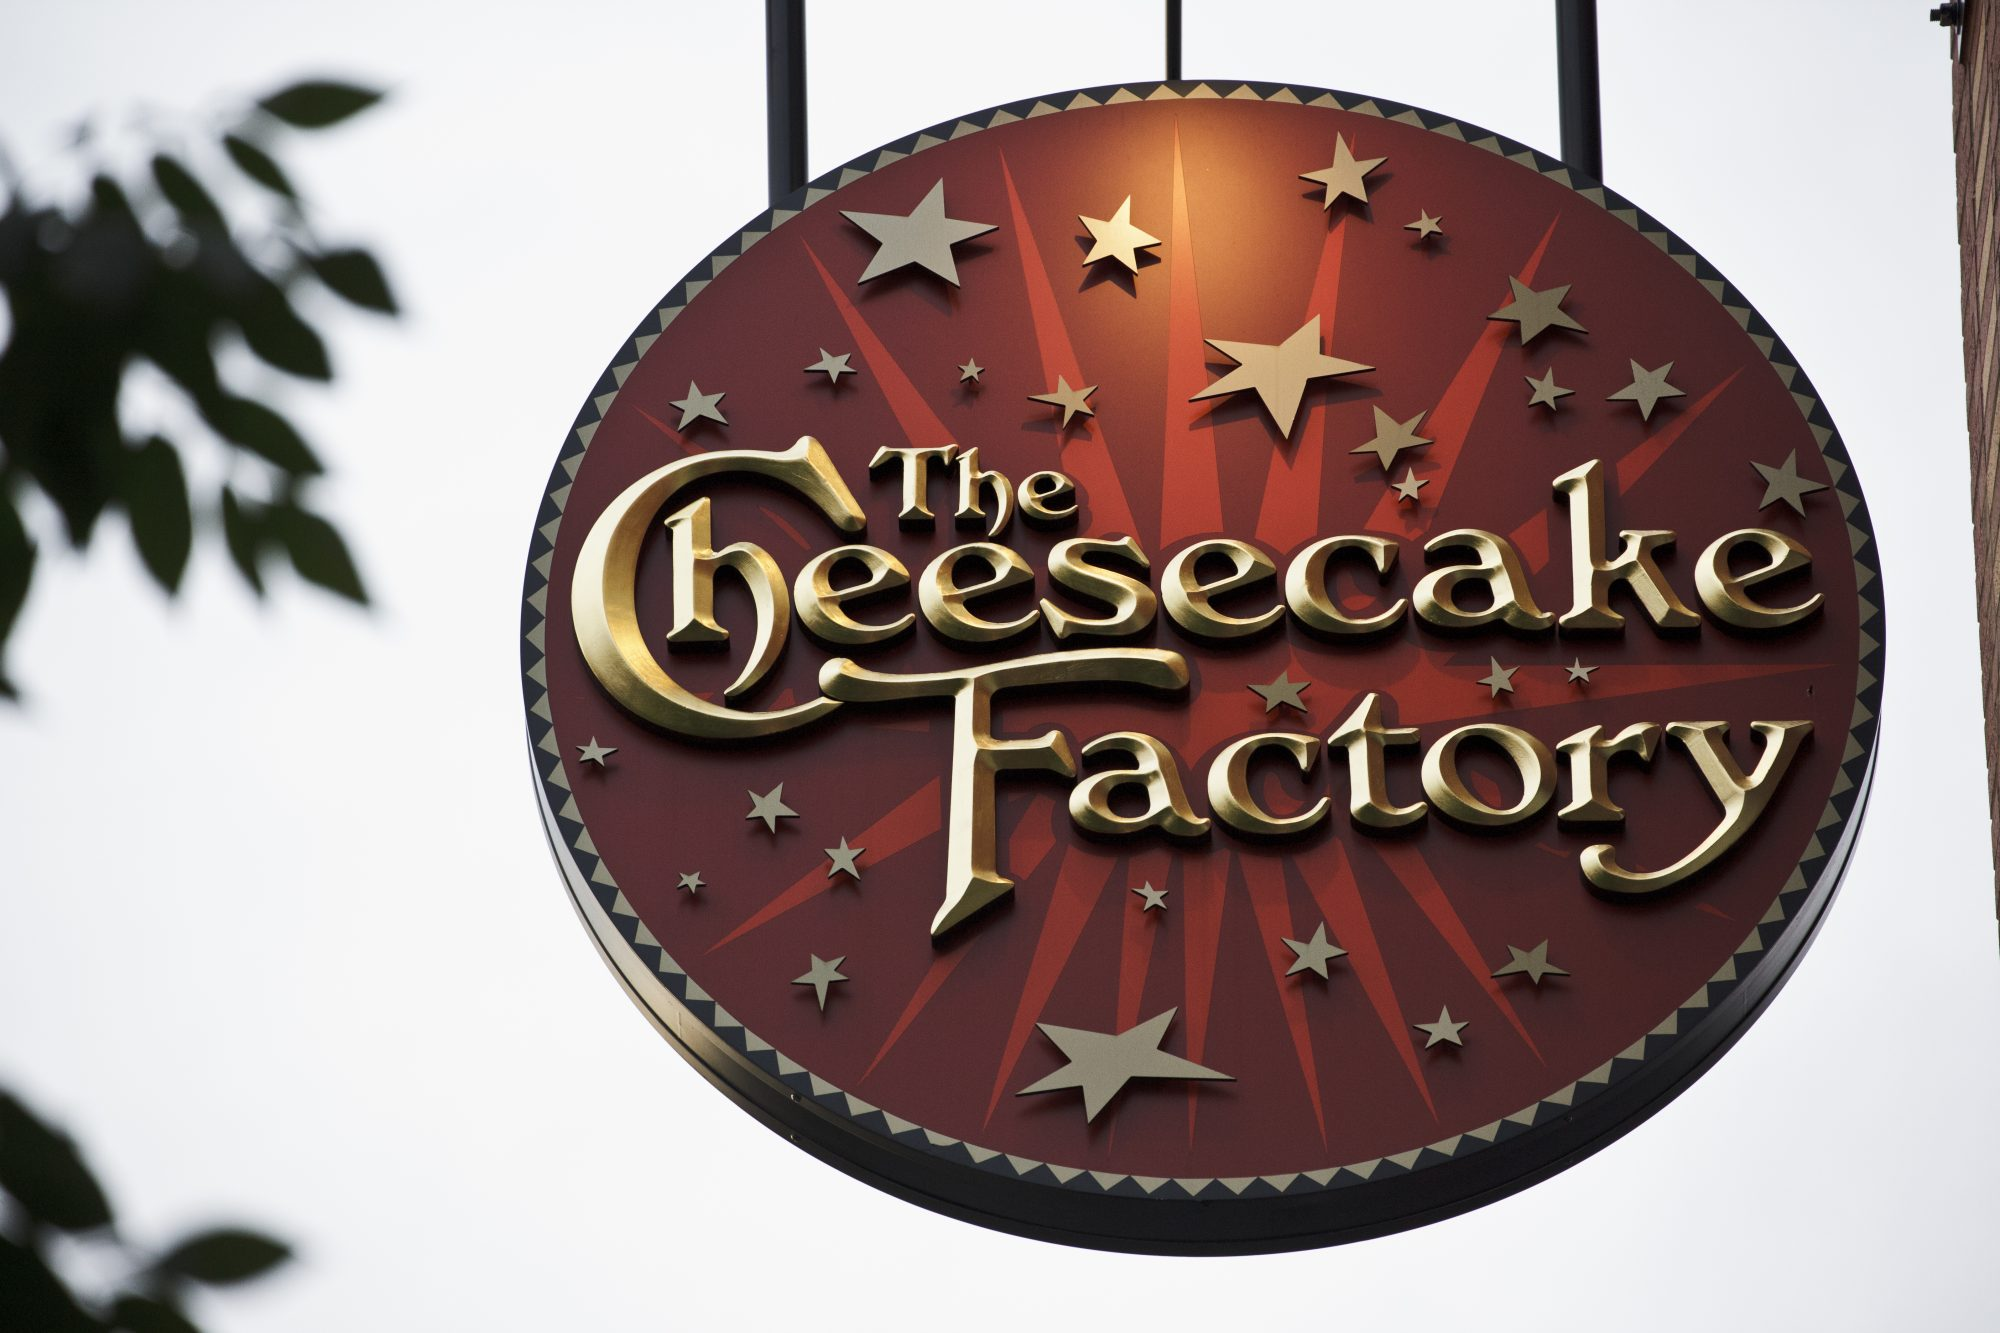 The Cheesecake Factory Sign